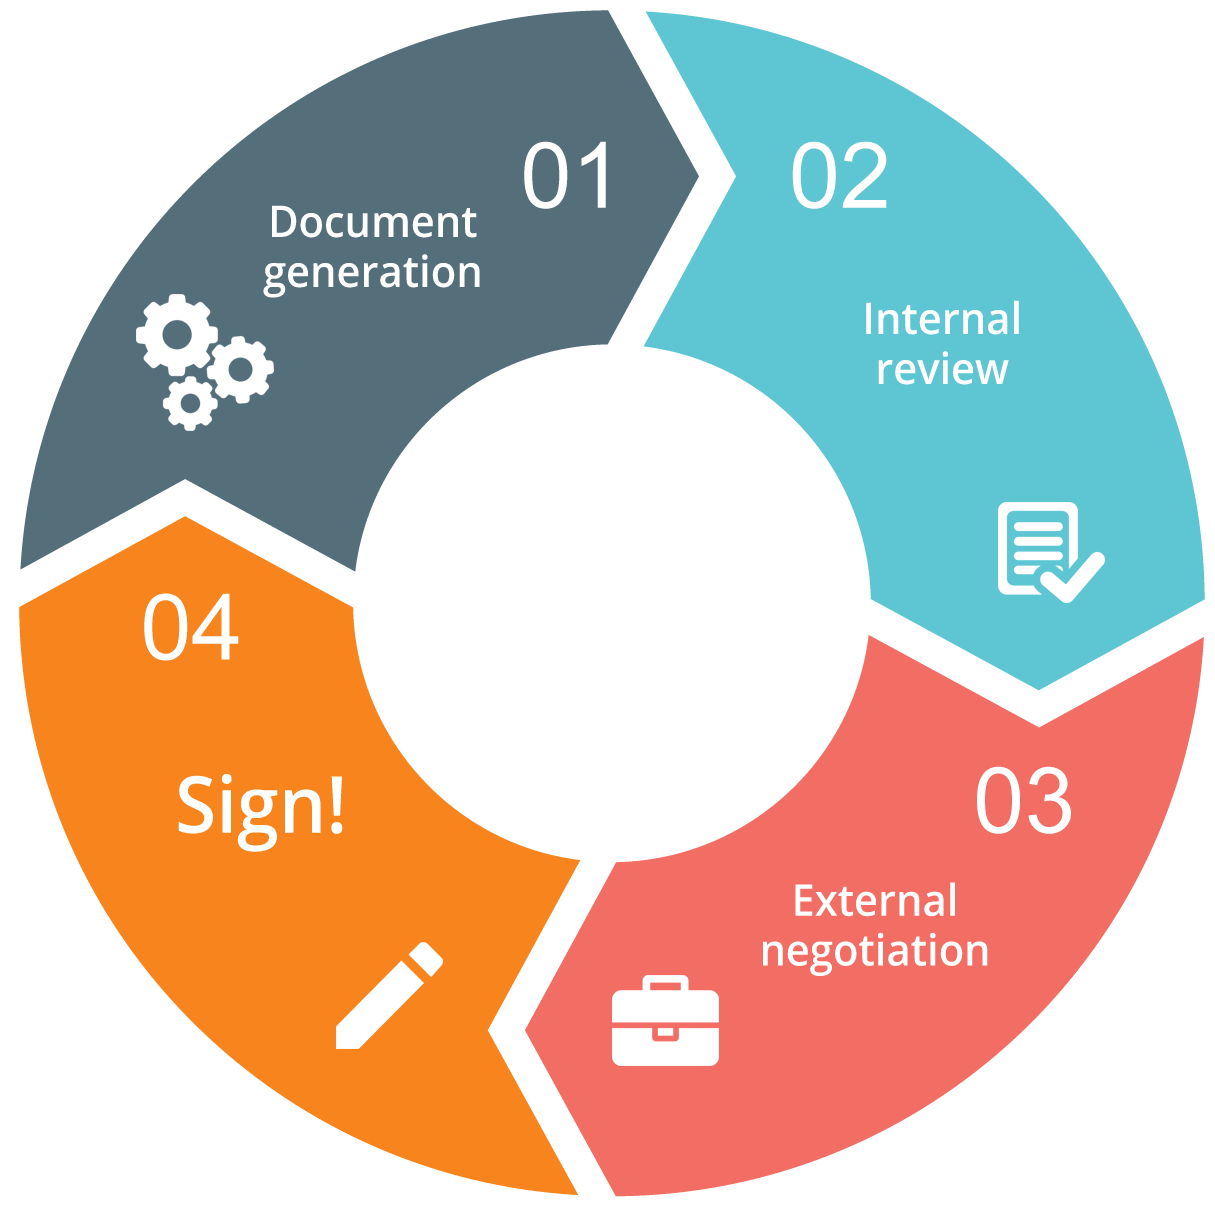 Manage entire salesforce document management lifecycle inside salesforce.com opportunity or accounts